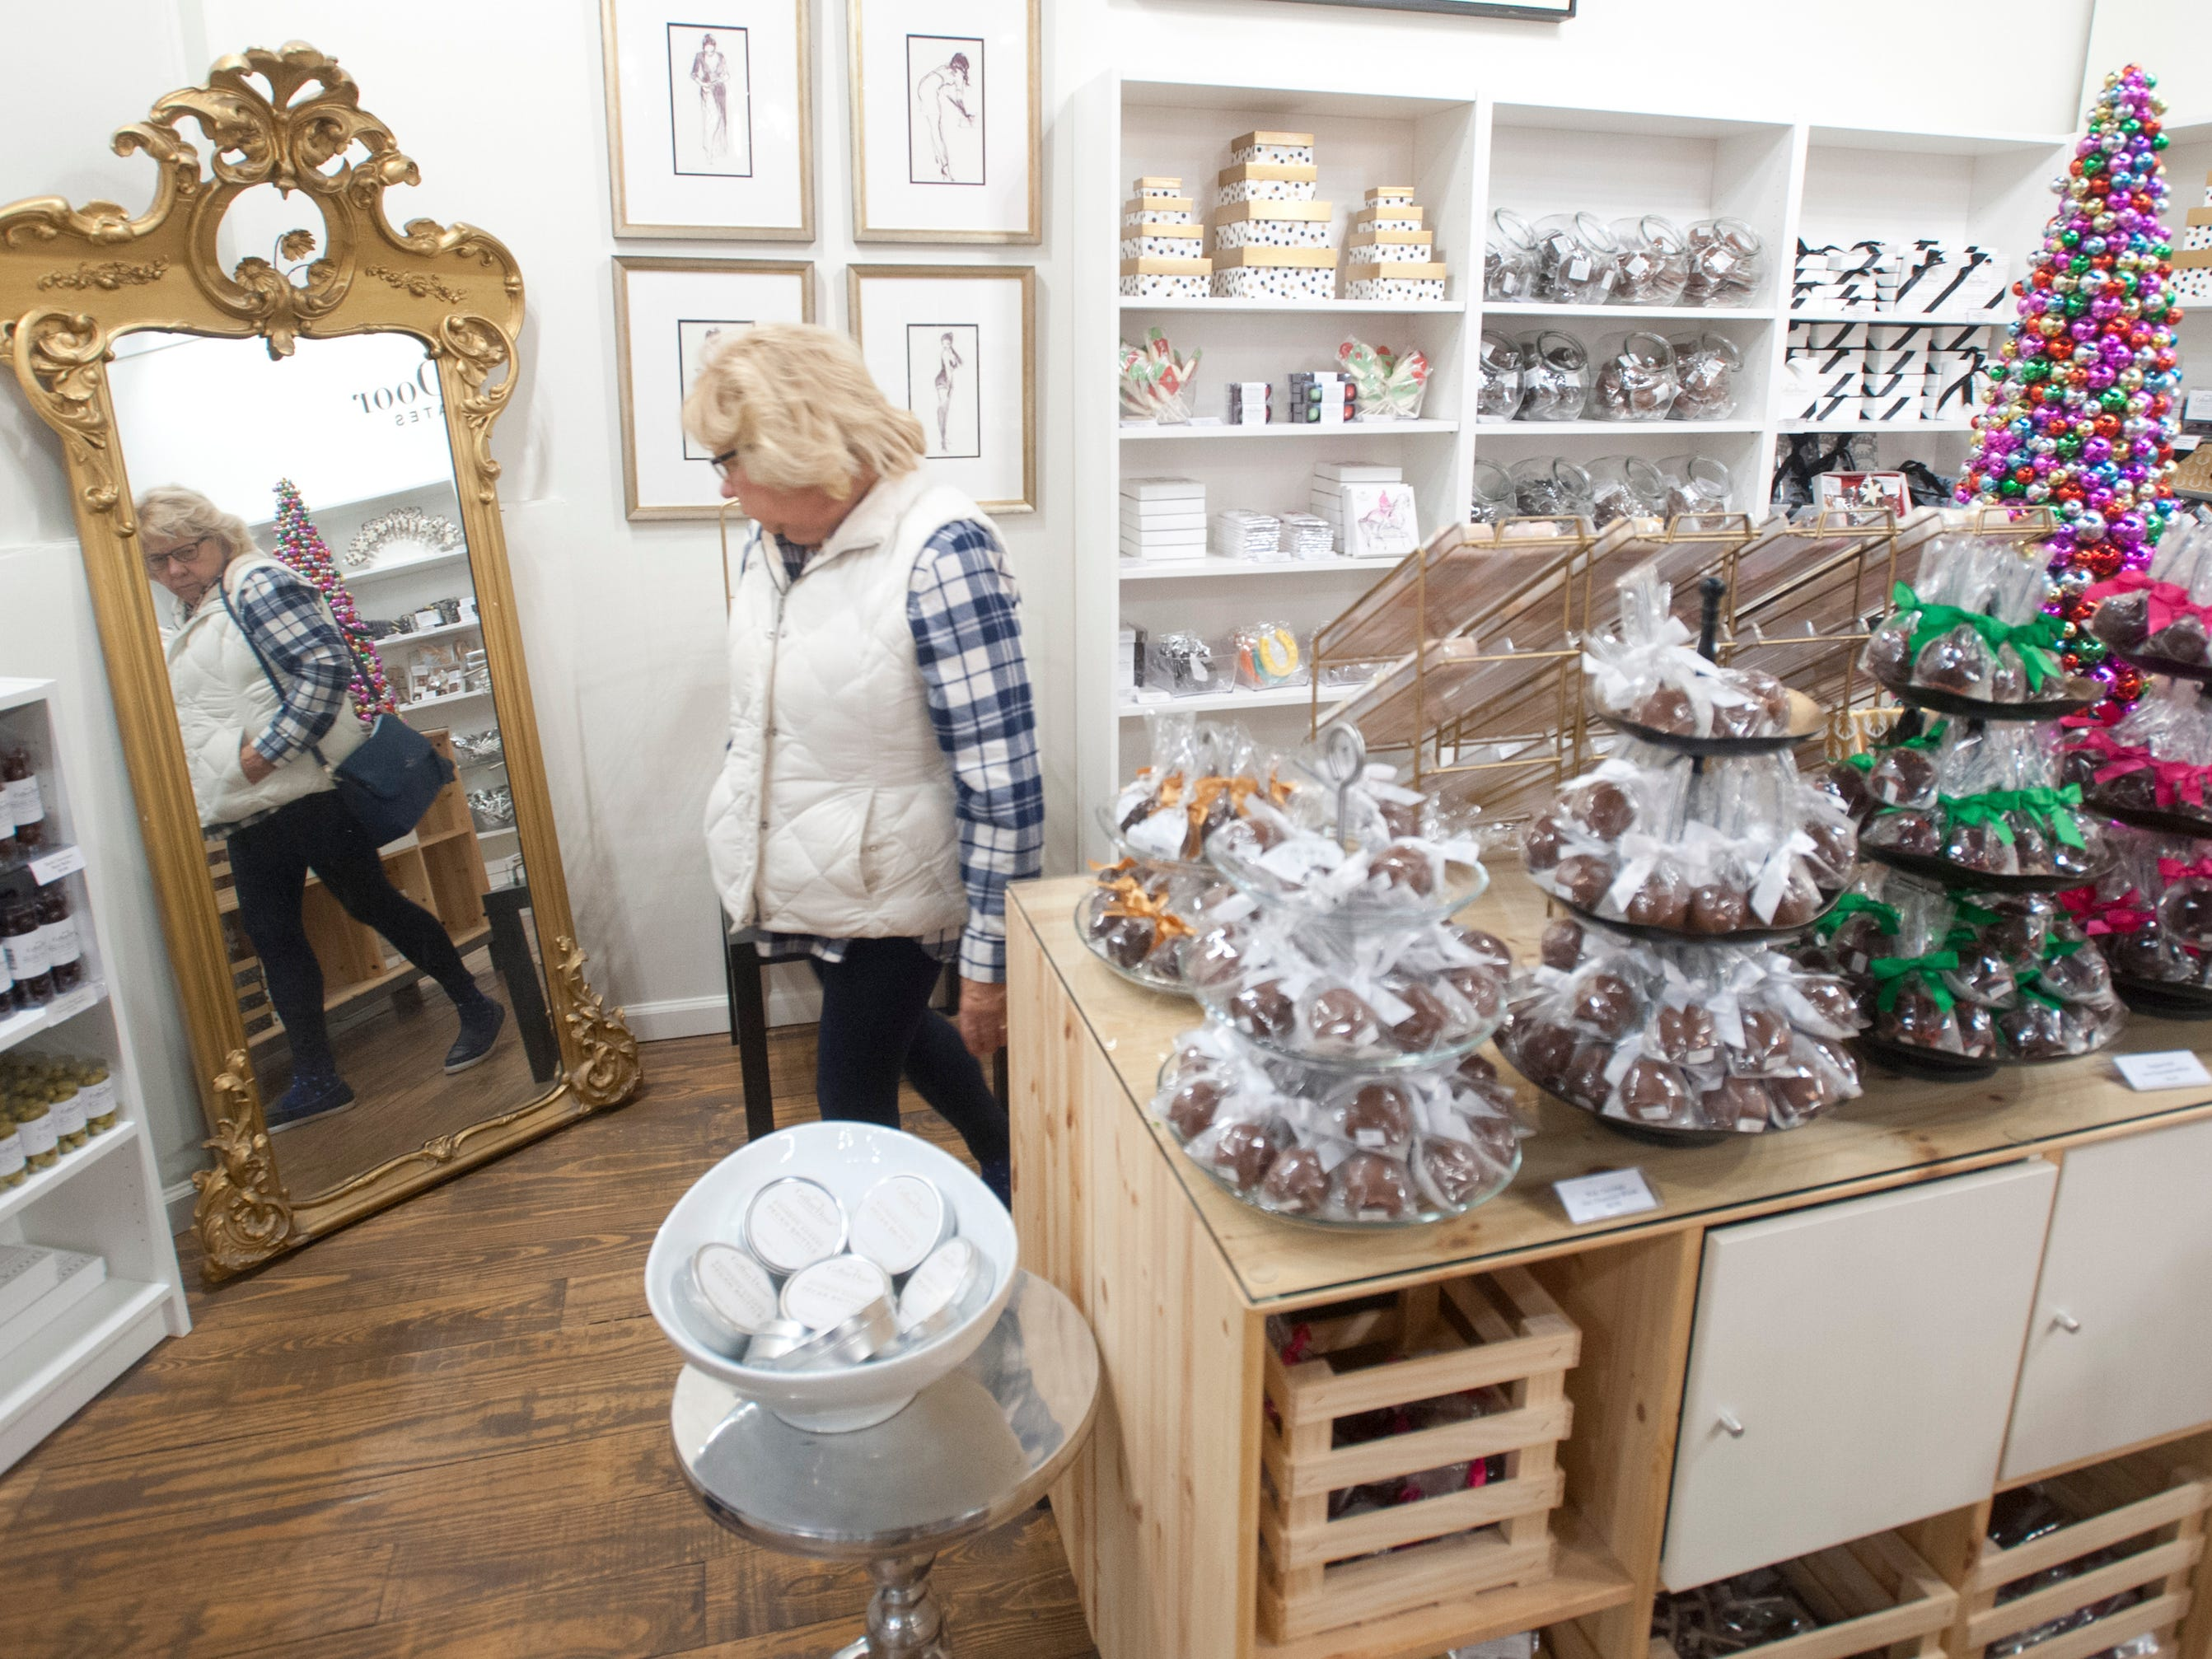 Linda Lorch of New Albany passes an antique mirror as she shops in Cellar Door, a candy shop at 1201 Story Ave. as part of Louisville's Small Business Saturday.24 November 2018